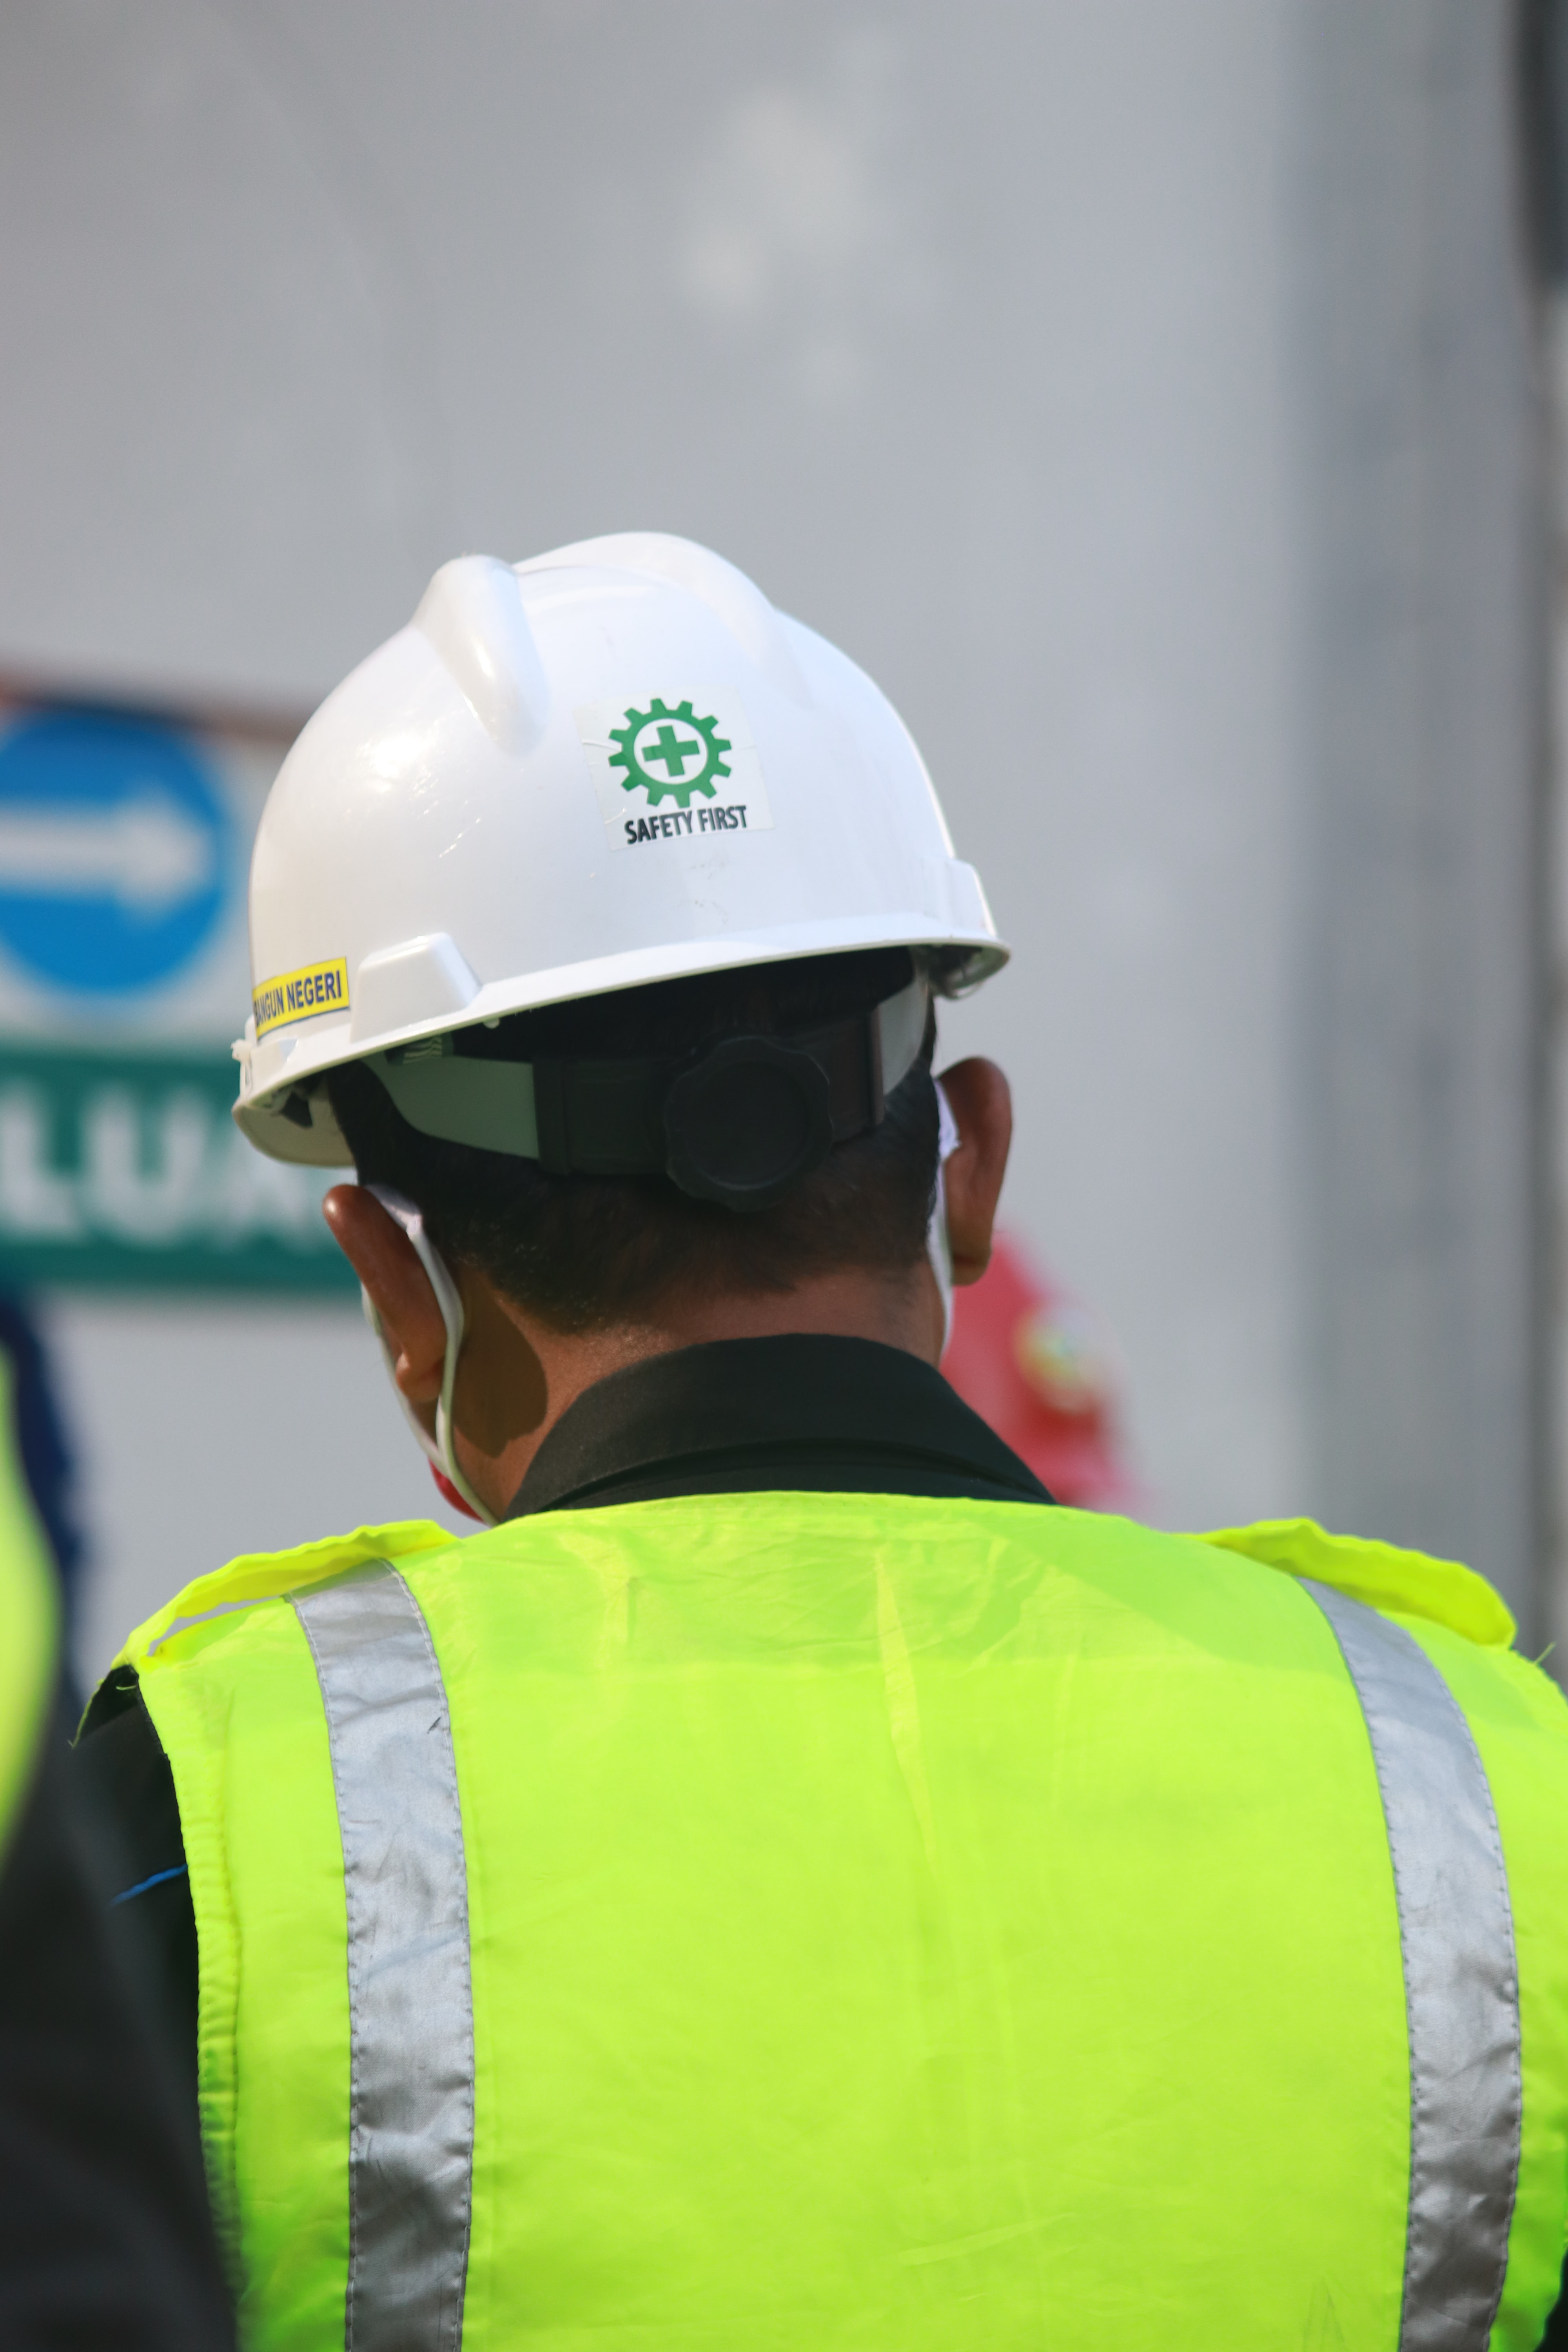 Green Span Profiles Why Your Commercial Project Should Exceed Building Code Construction Worker in Vest and Helmet